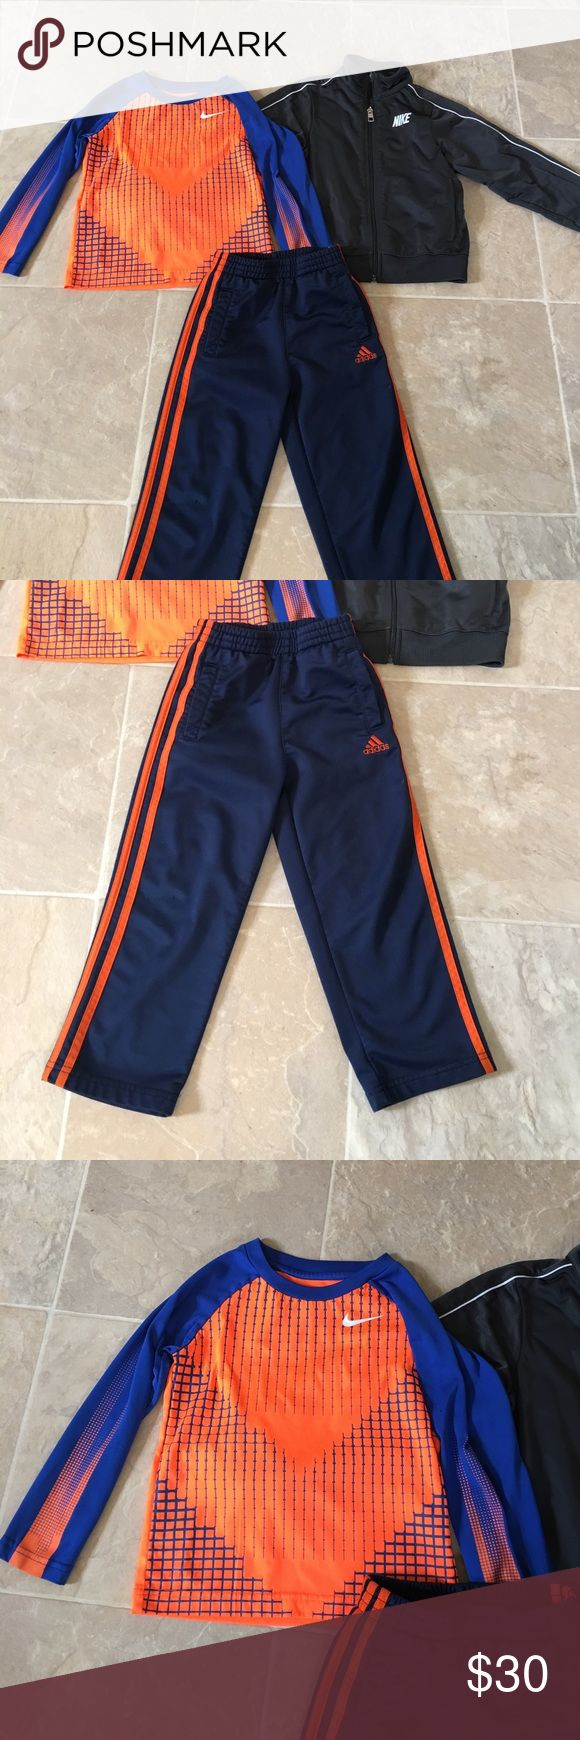 4T Boys Nike Adidas 3 Piece Set  🎀🎉✨ Condition- pre owned flawless  Size - toddler boys 4T Color-gray and white zip up / orange & blue Top / blue and orange pants Style- Dri Fit Nike top and zip up jacket / Dri Fit sweatpants  Brand- Nike and adidas Smoke free pet free home!! Ships within 2 business days!  Bundle with 2 or more listings and save 25% through march Nike Shirts & Tops Tees - Short Sleeve